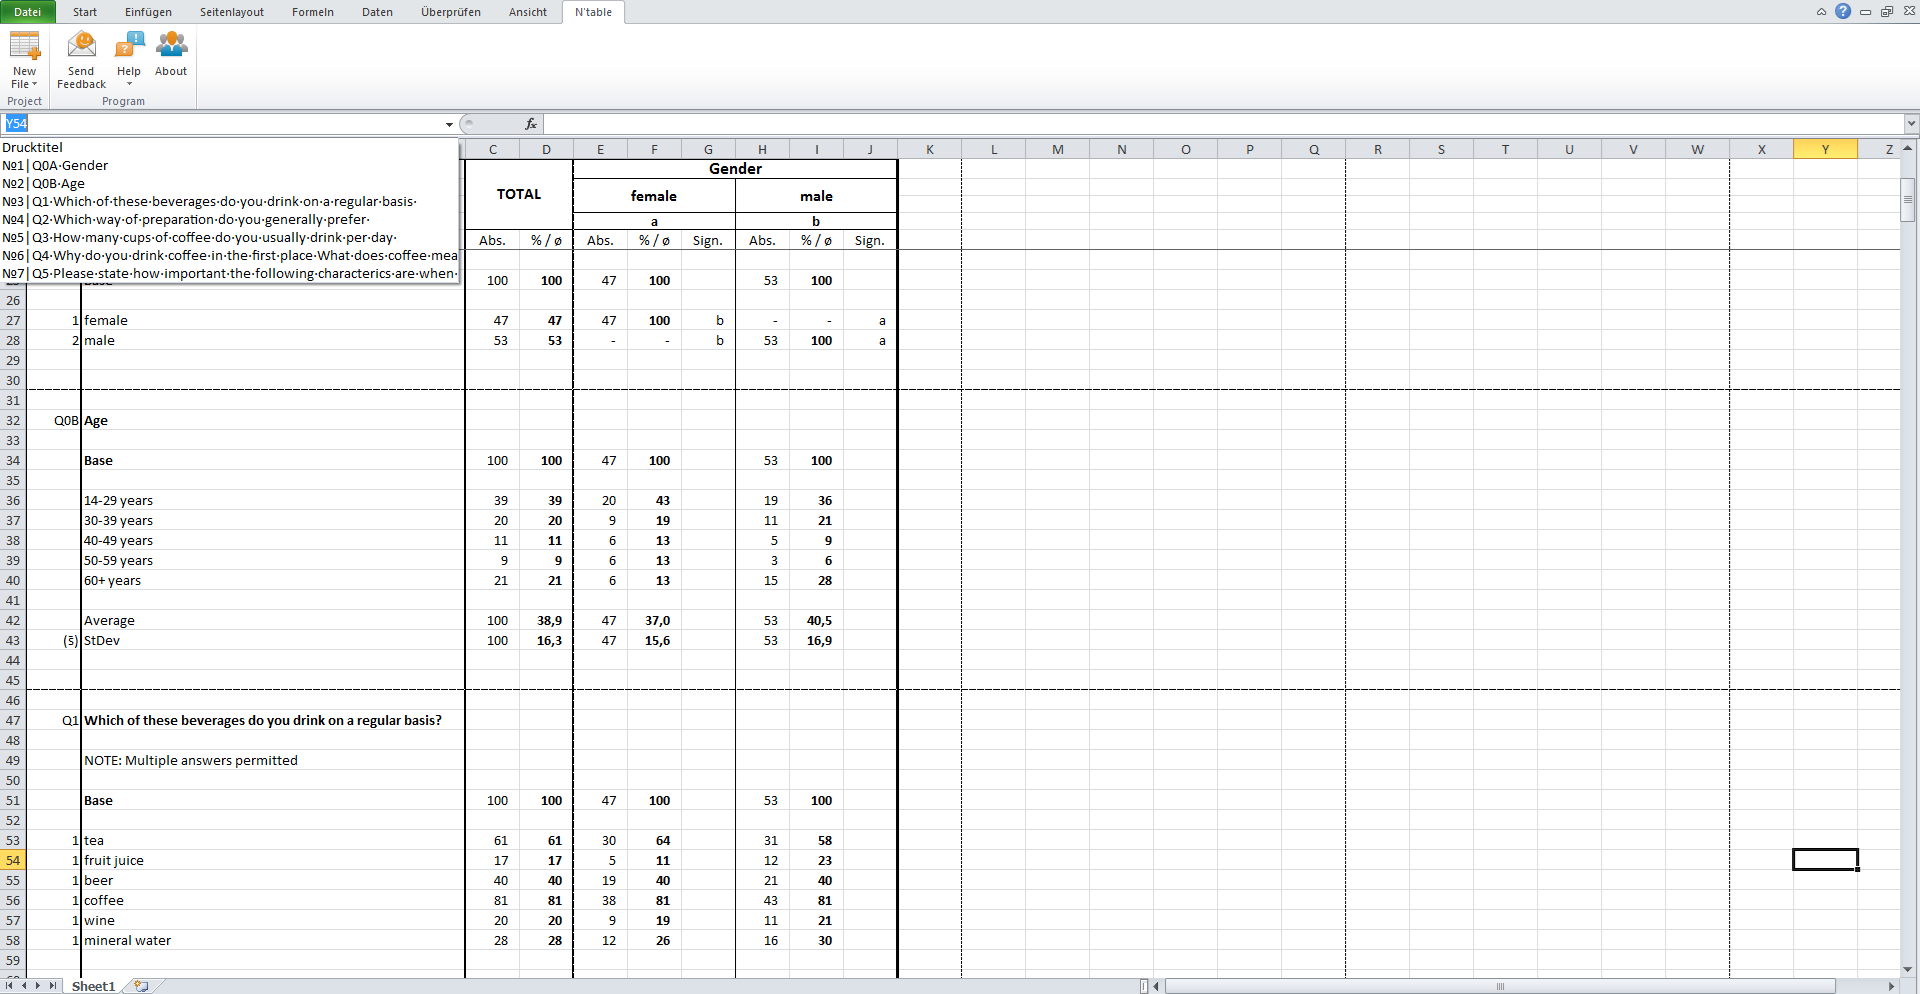 7. A clear, Excel-native export sheet. Hyperlinked dropdown menu for quick navigation without tedious scrolling.